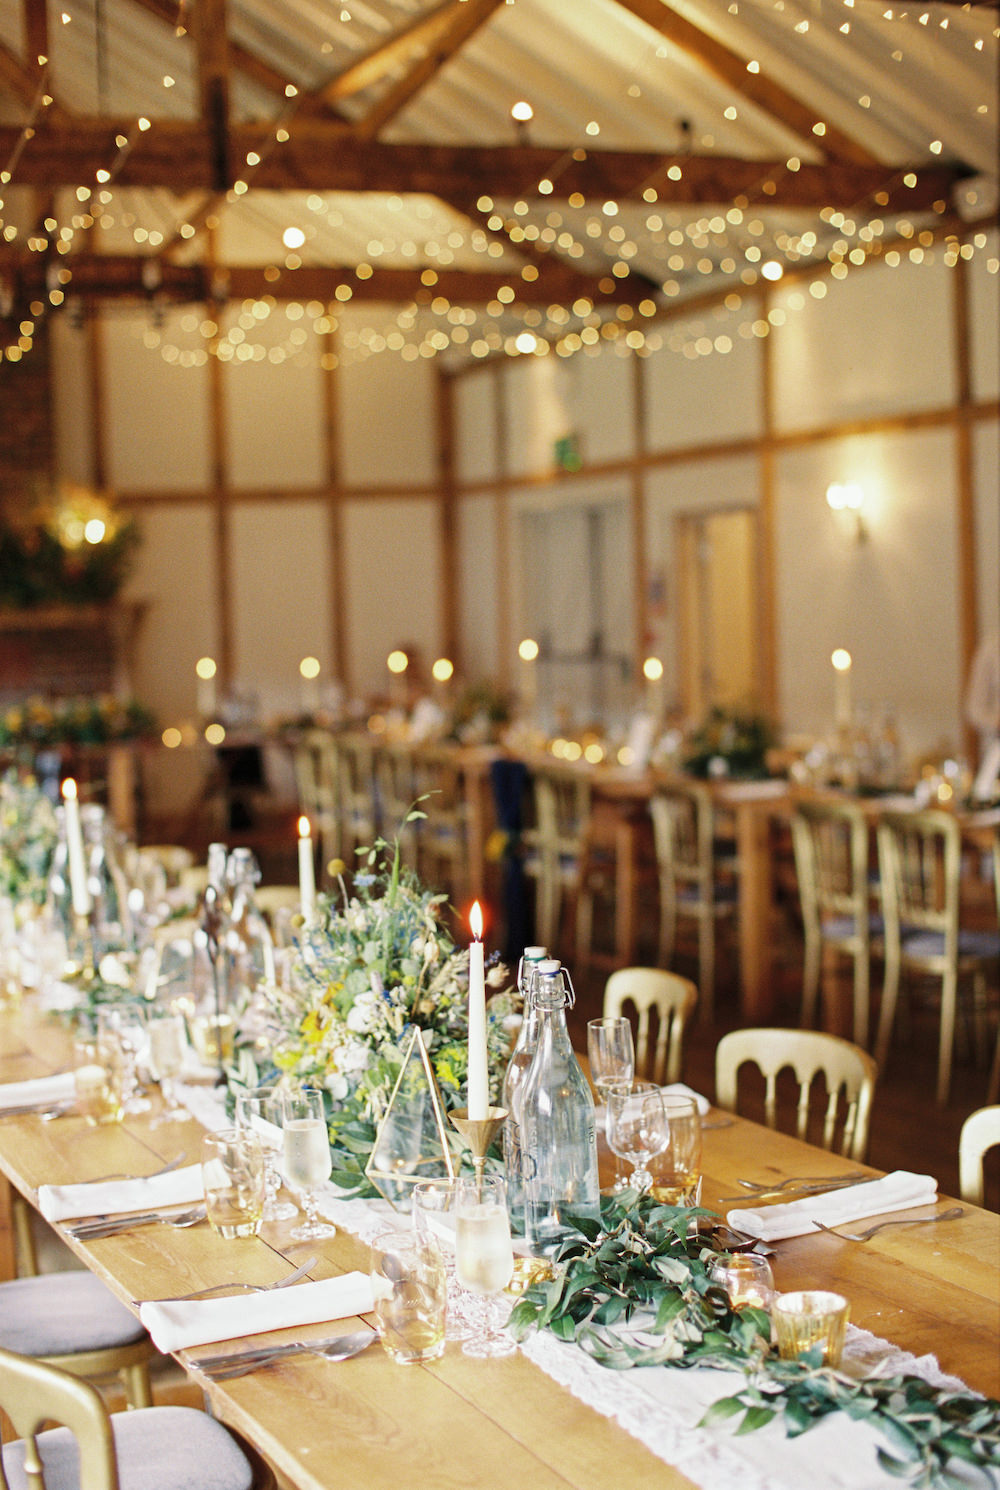 Barn Reception Fairy Lights Candles Long Tables Decor Burley Manor Wedding Becky Bailey Photographer